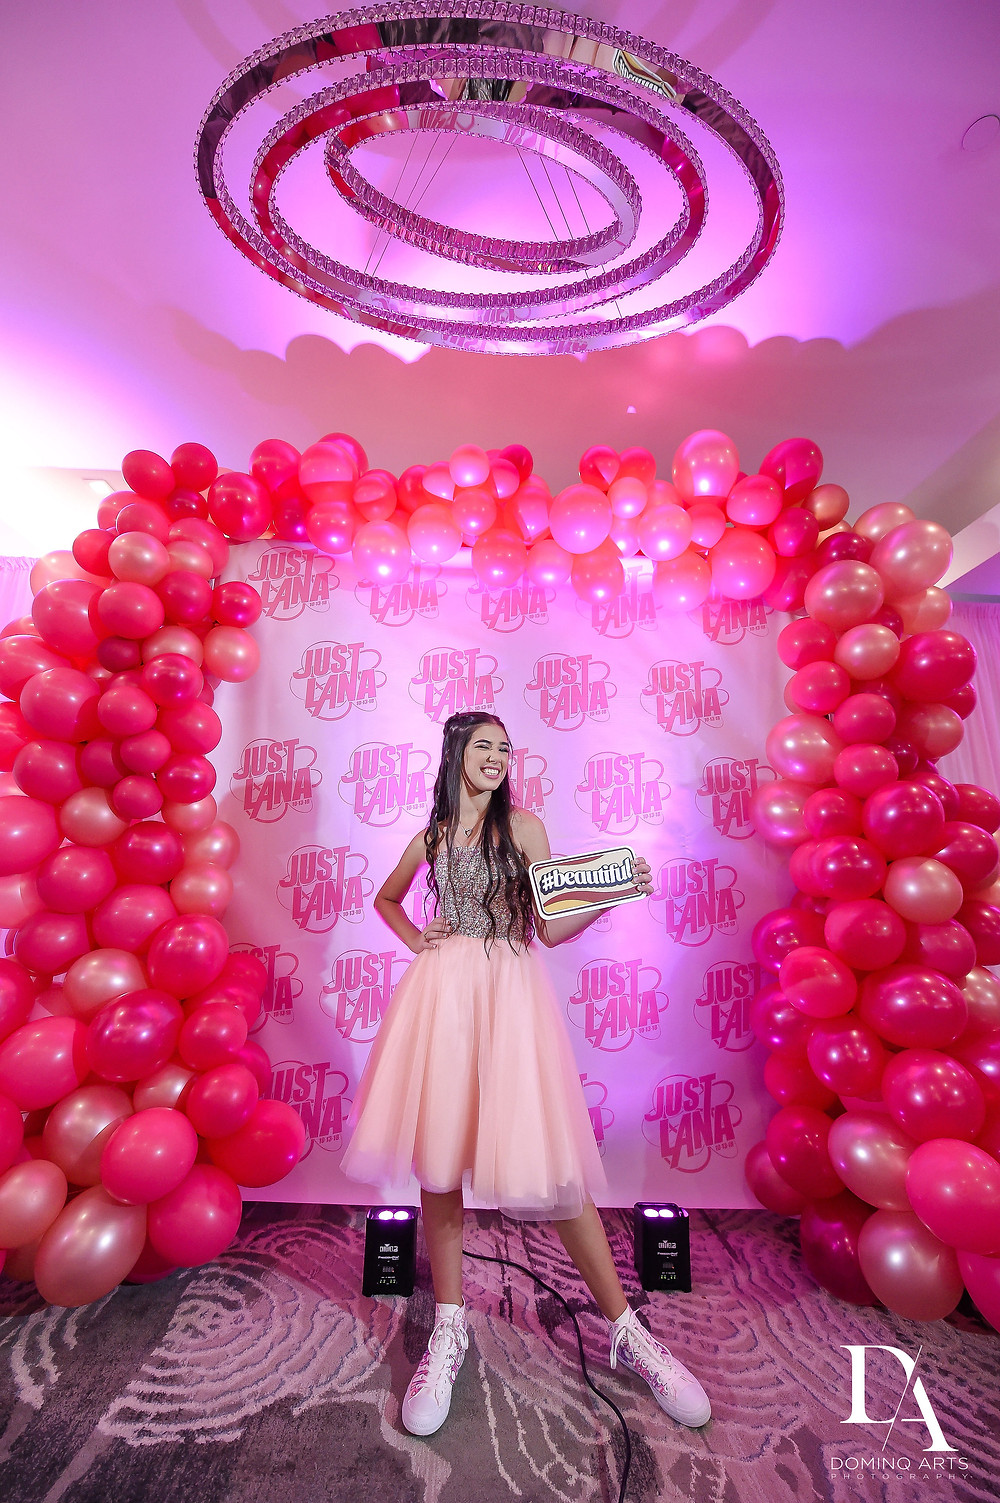 Balloon walls are the new flower walls! They make for wonderful, celebratory décor for any event